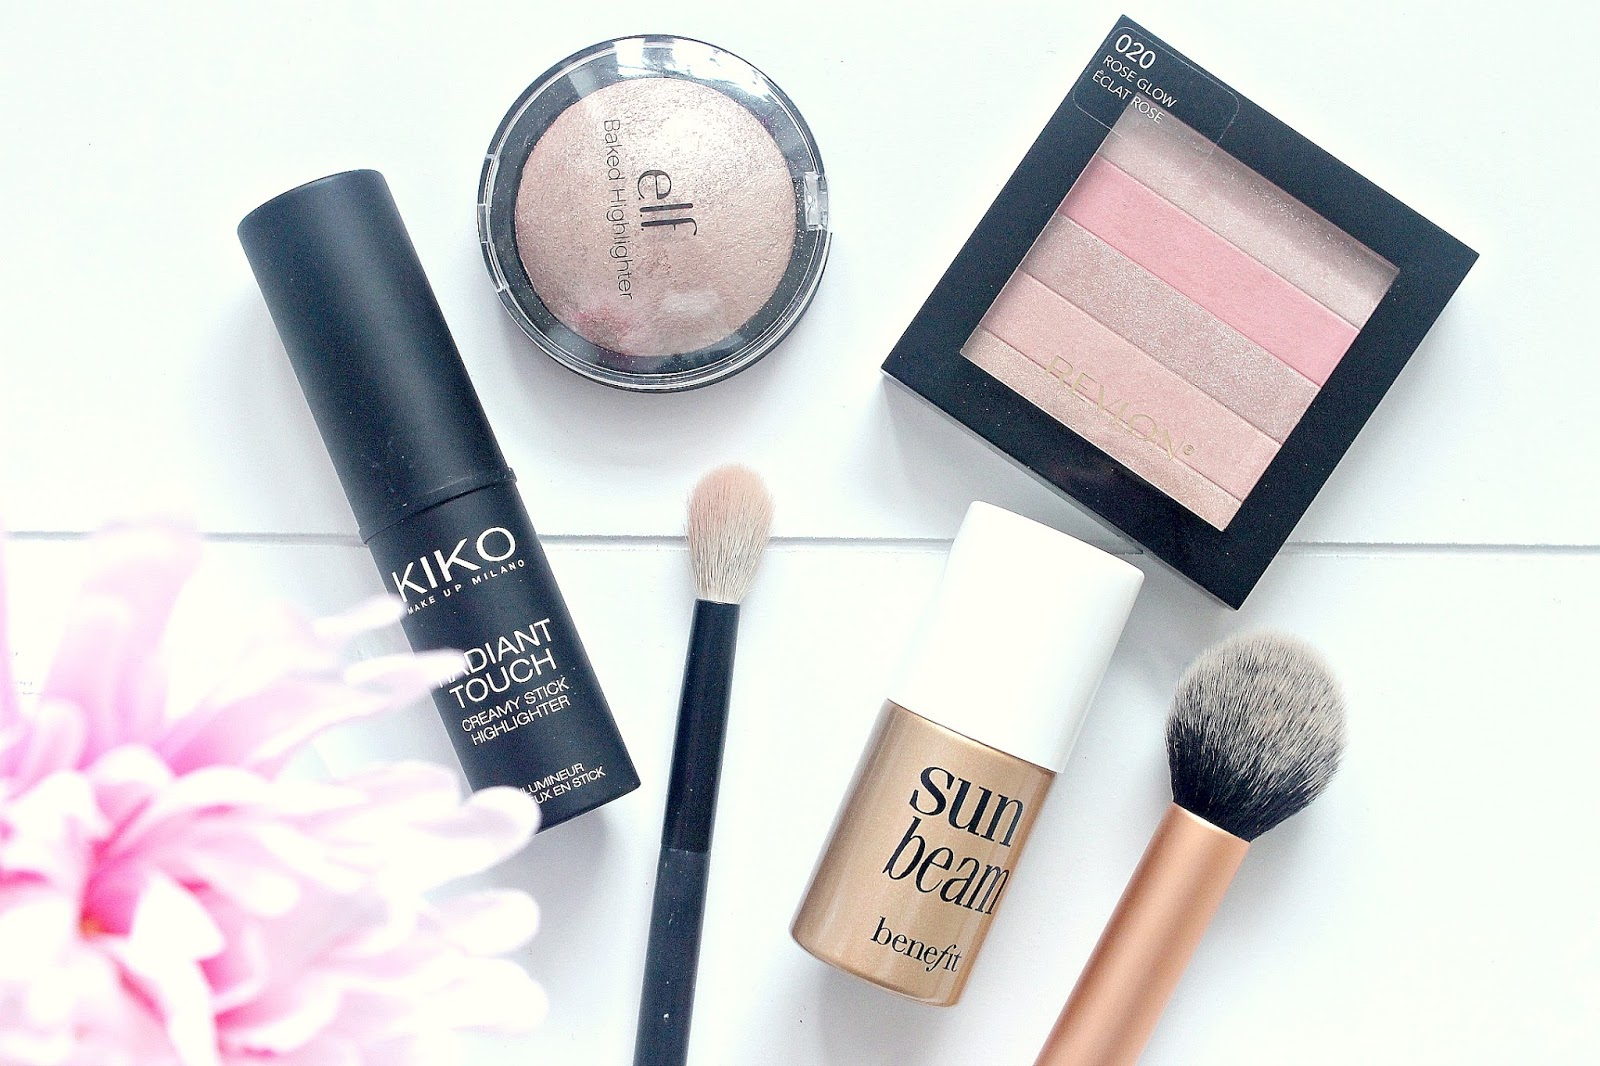 Glowy Skin on dull days flatlay with KIKO, Benefit, elf, Revlon